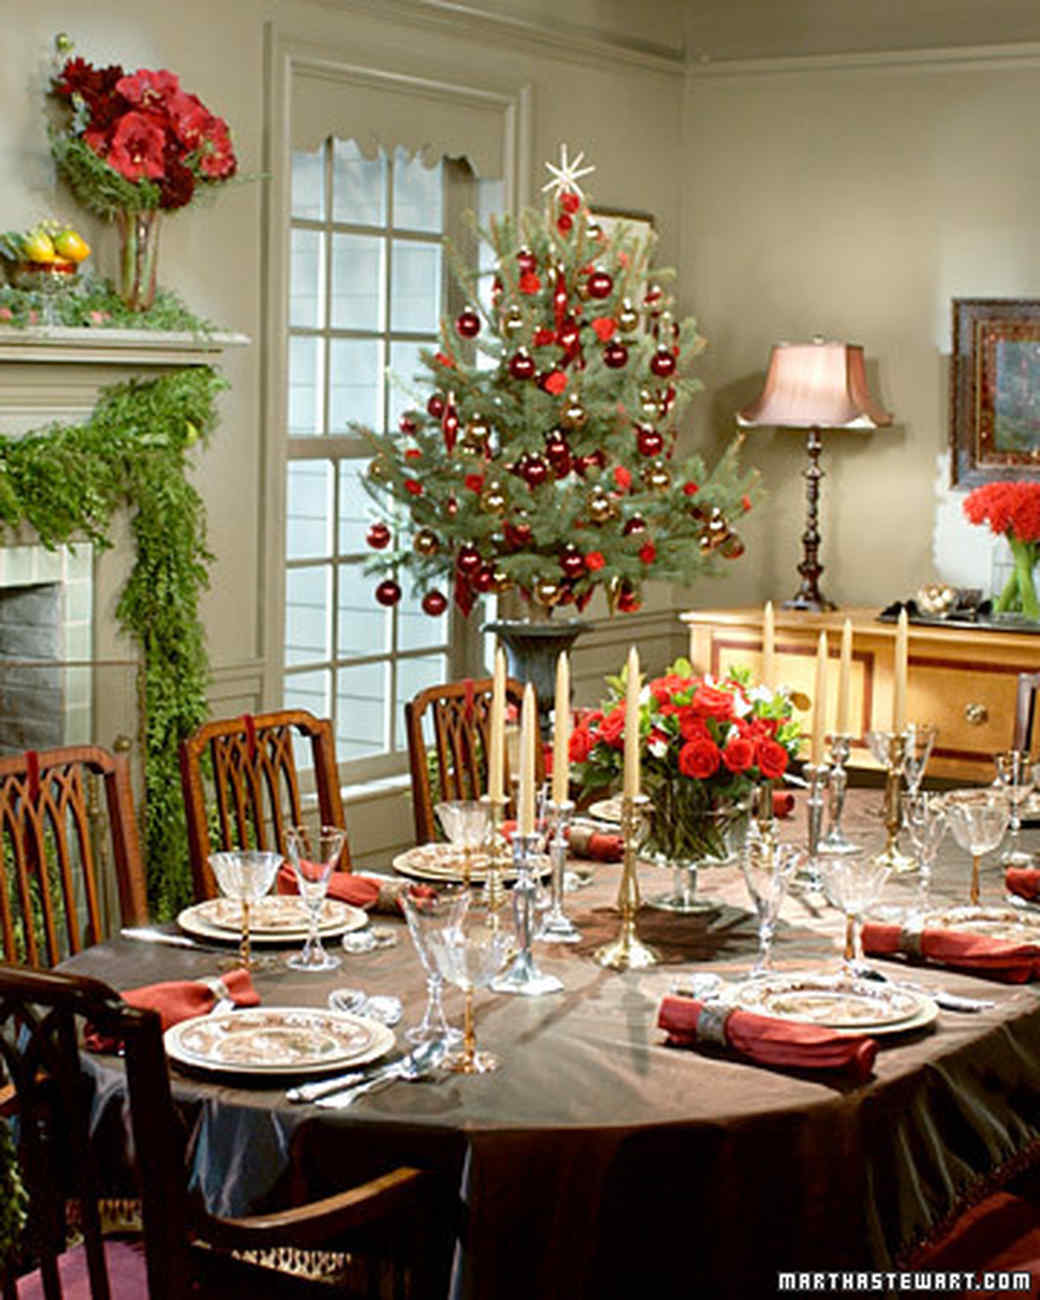 Photos Of Dining Rooms Decorated For Christmas